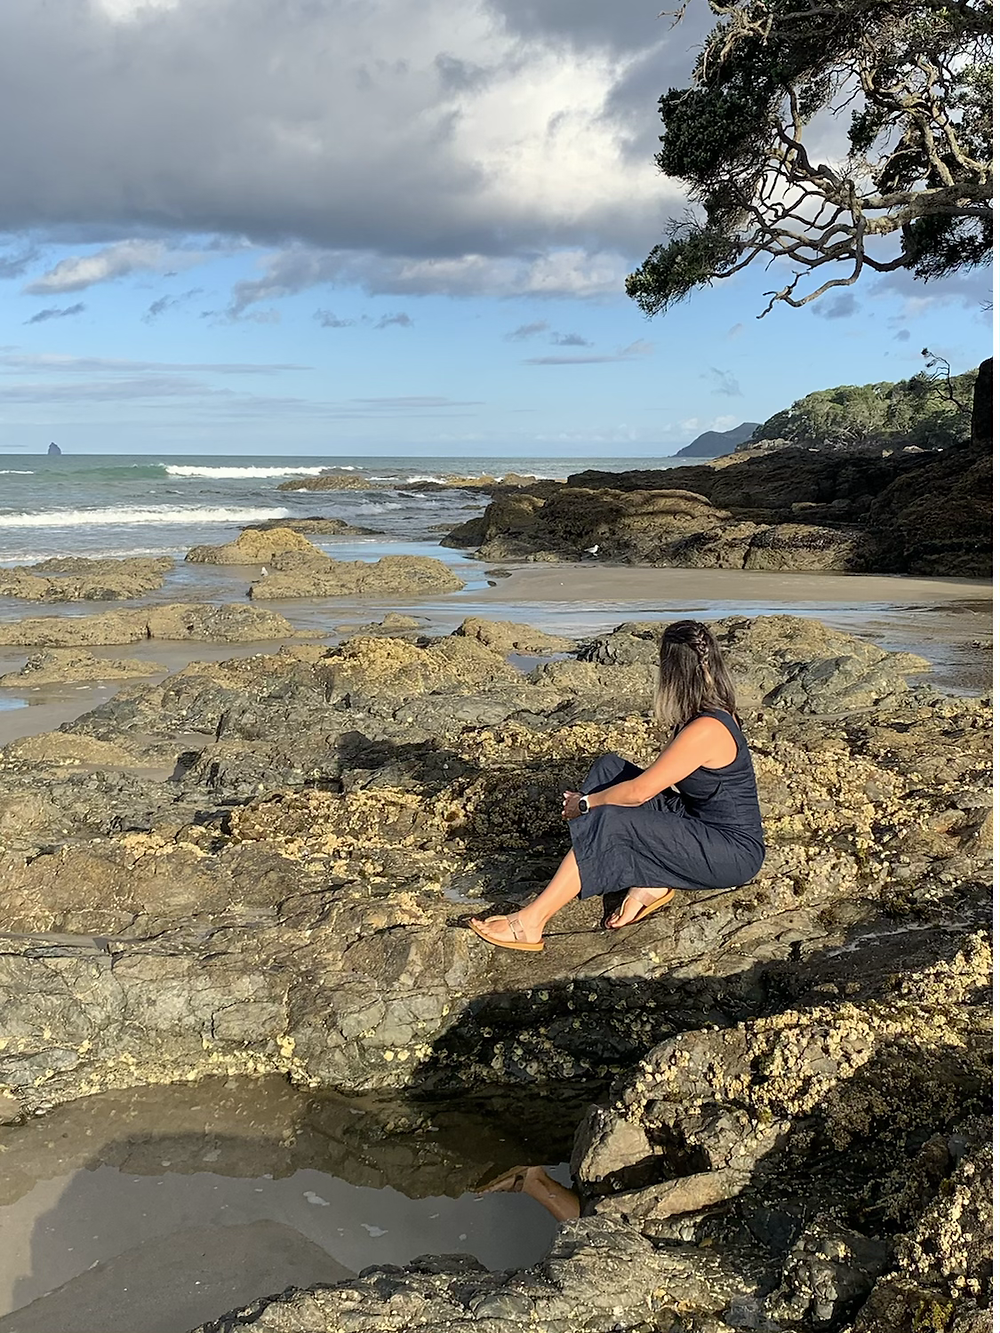 Lady sitting on a rock looking out to the ocean